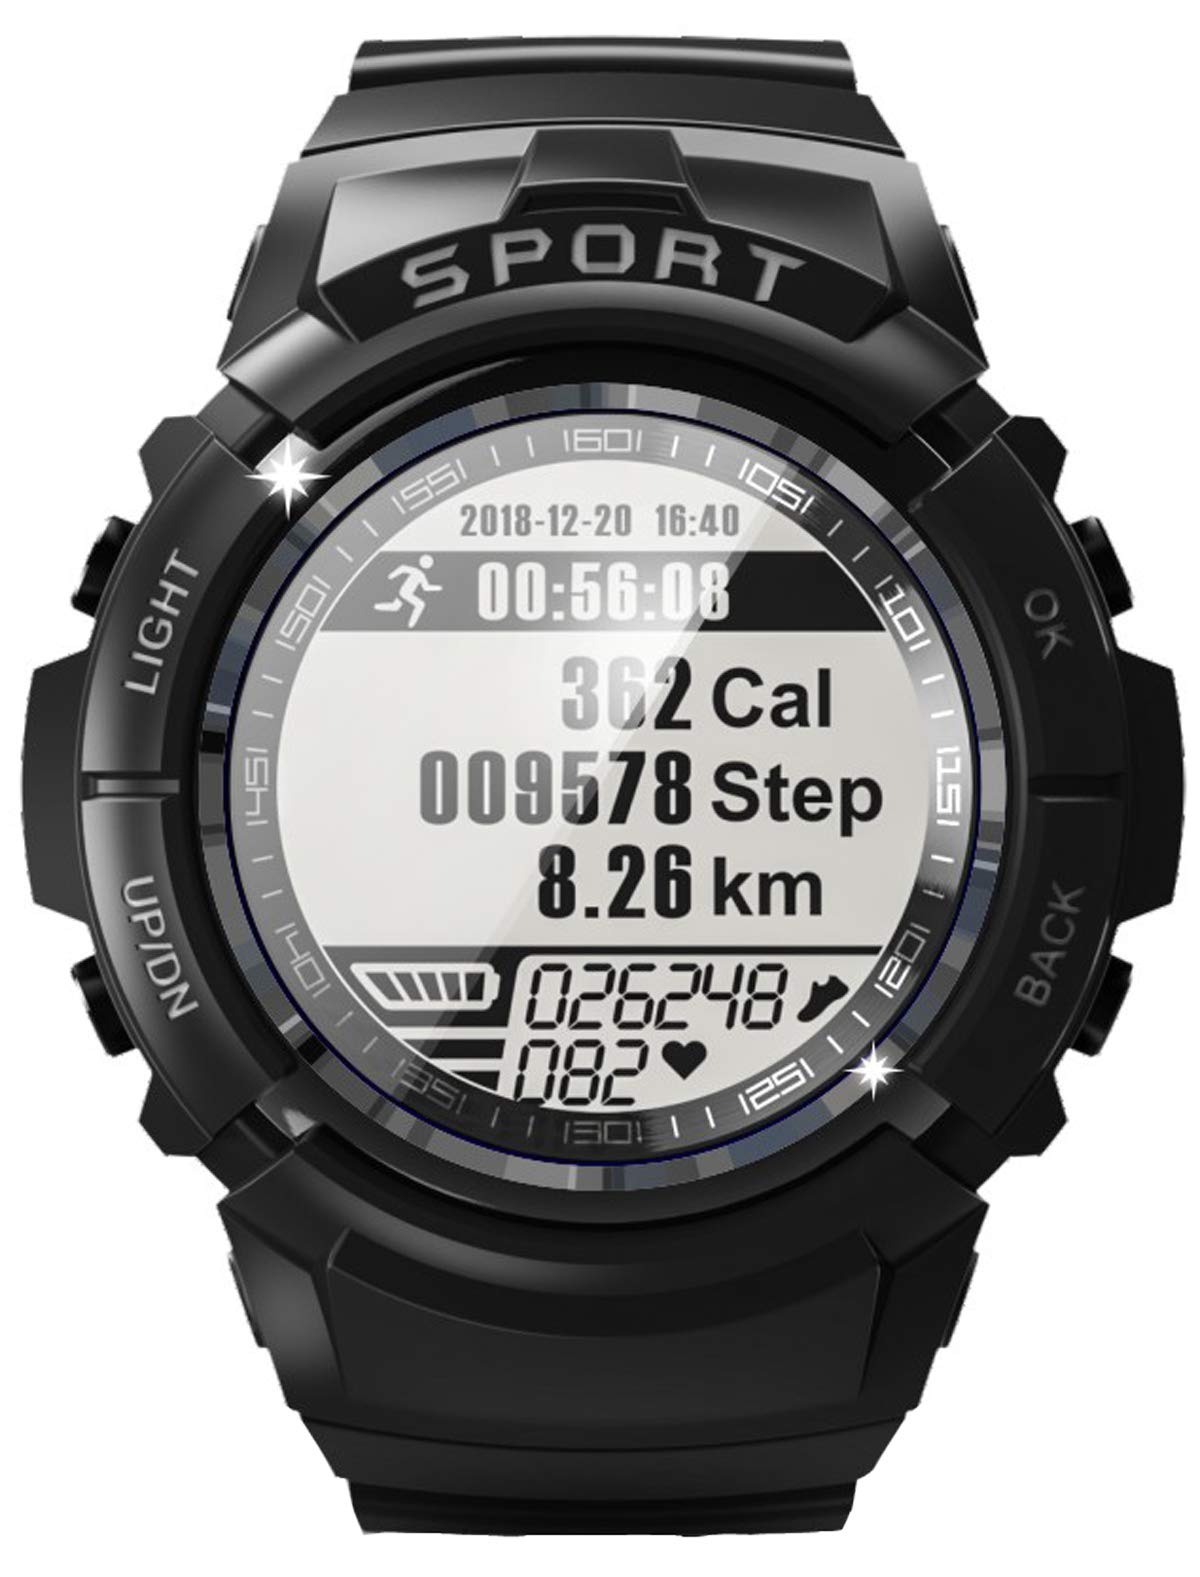 Mens Military Outdoor Sports Watch Compass Heart Rate Monitor Pedometer Calorie Counter Waterproof Digital Watch by findtime